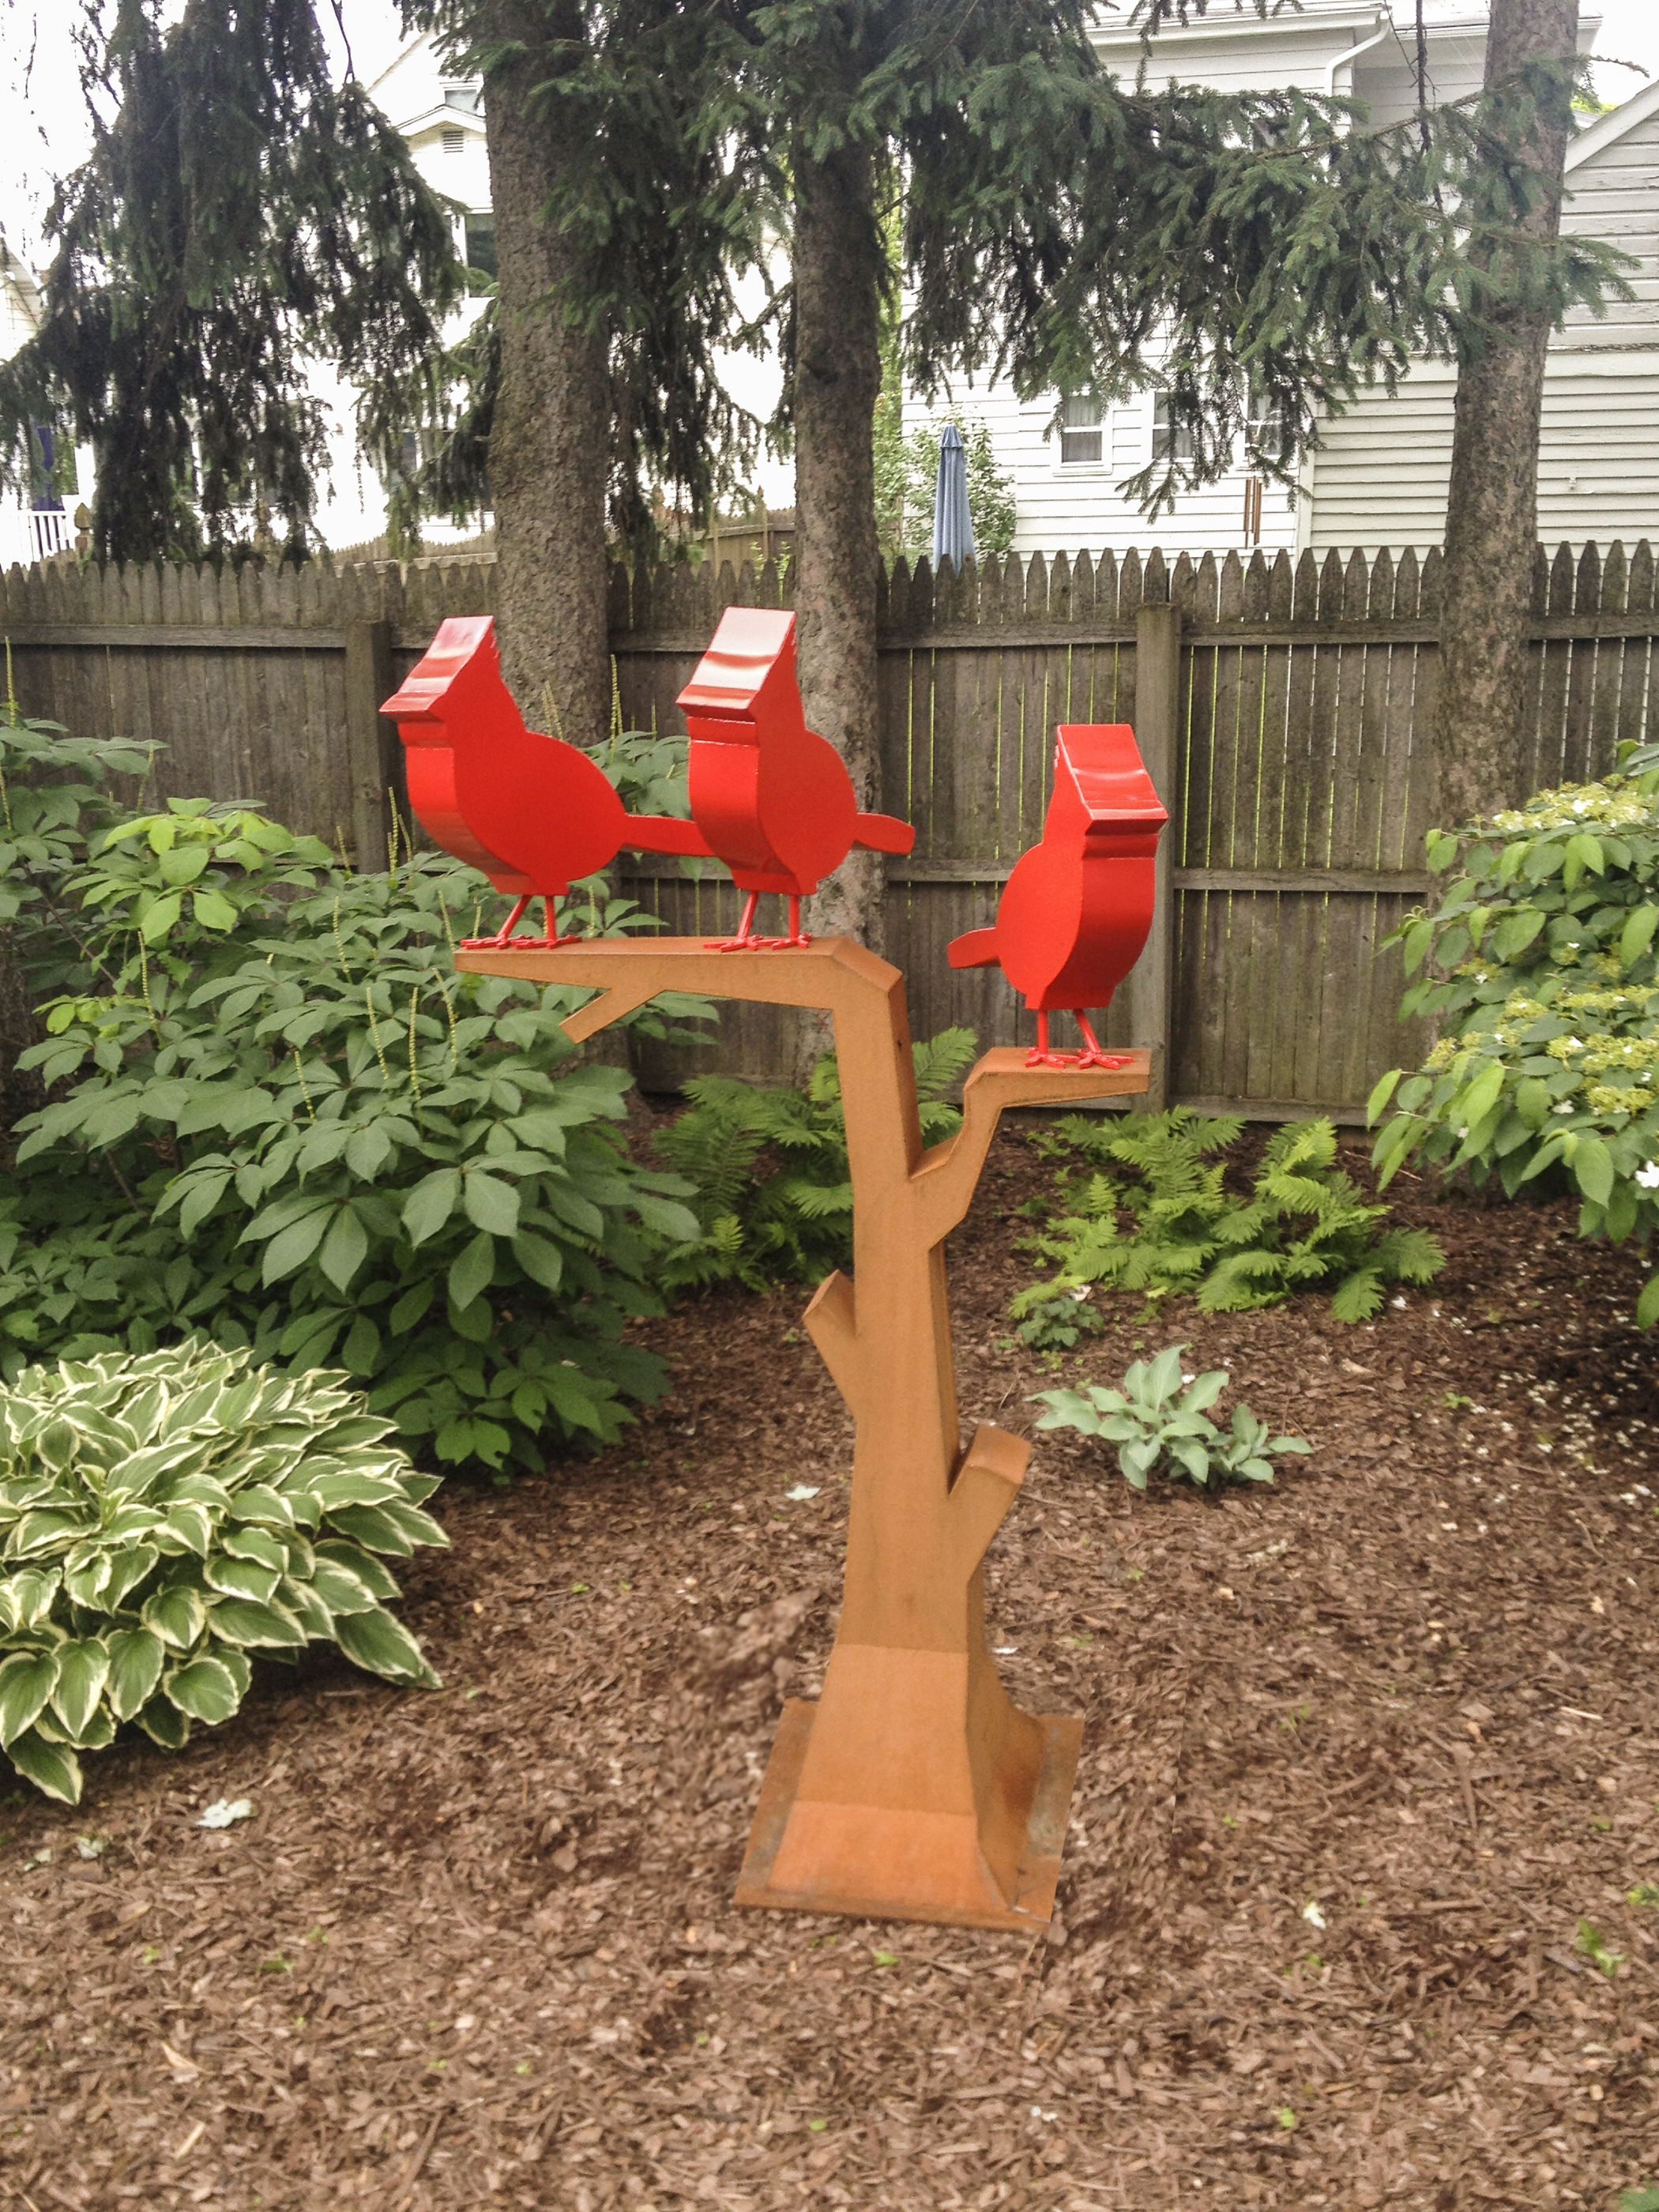 3 Cardinals in a Tree